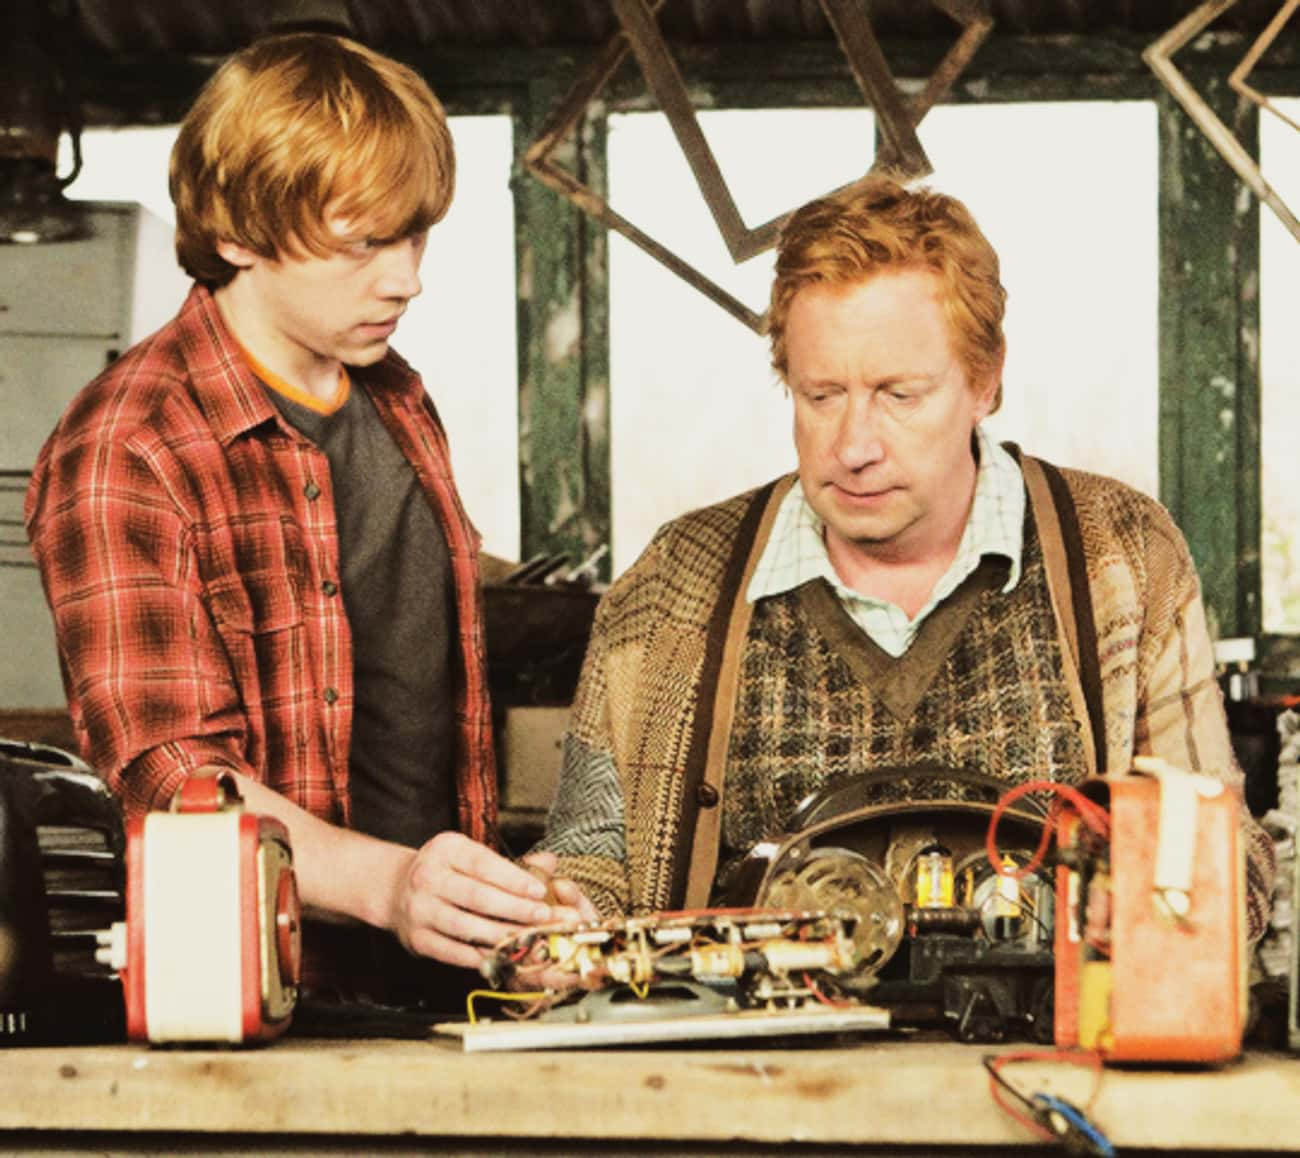 Ron and Arthur Weasley Were Bo is listed (or ranked) 1 on the list J.K. Rowling's Post-Books Reveals About Harry Potter